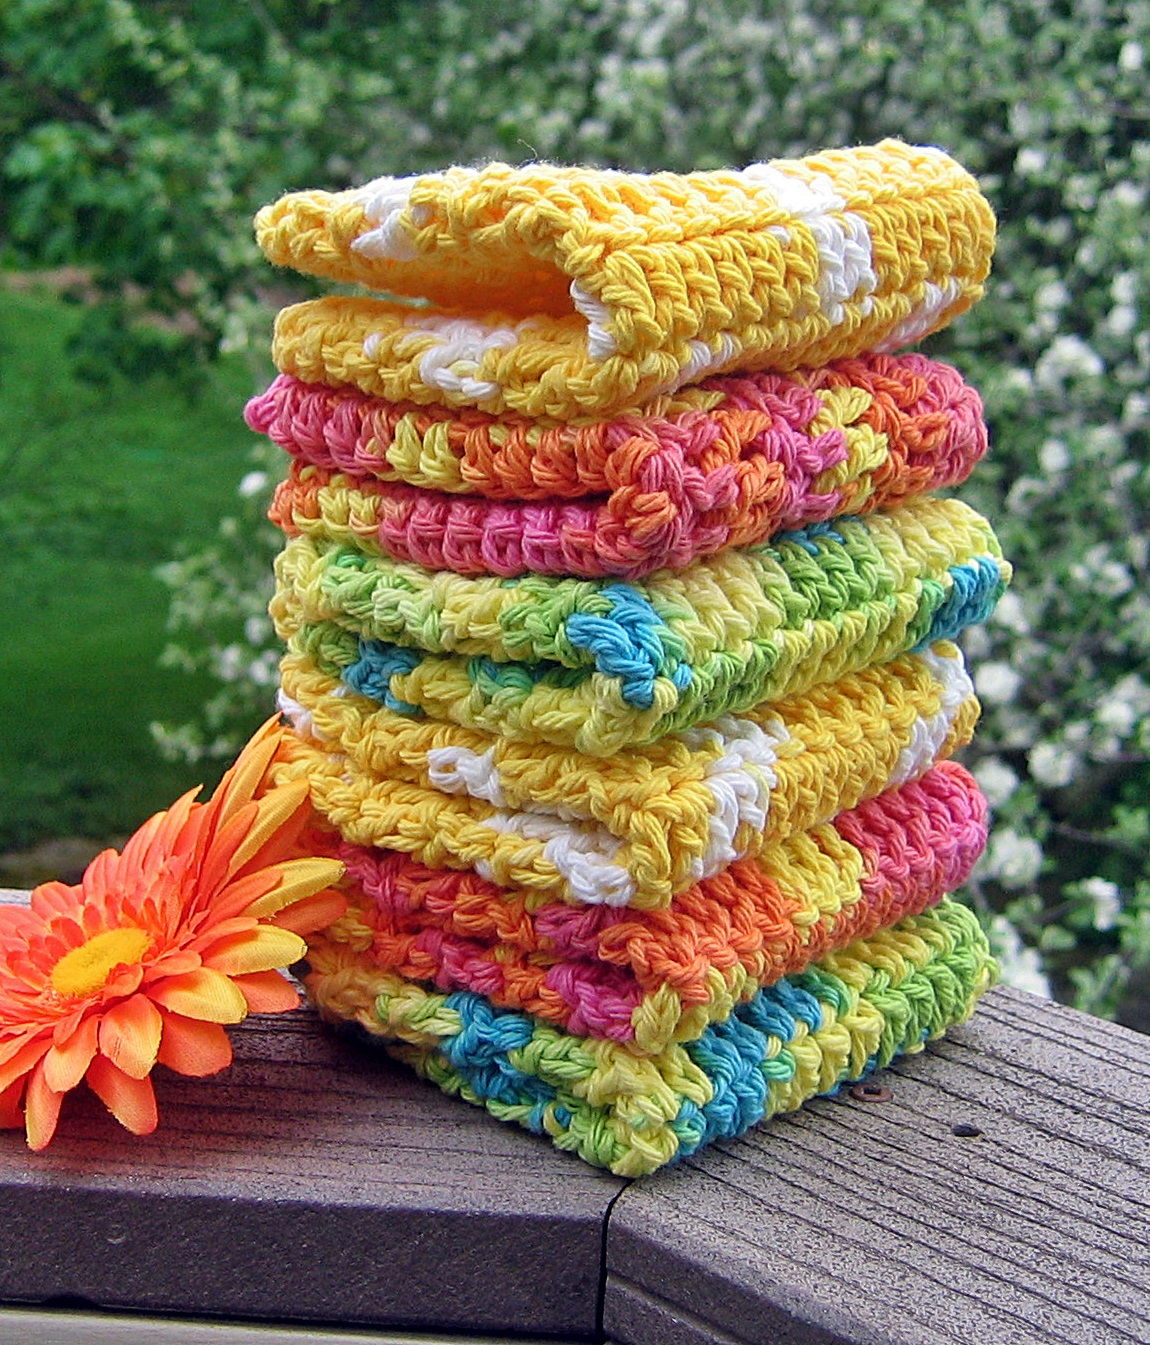 Handmade By Annabelle: 8 Steps to Beautiful Crochet Washcloths